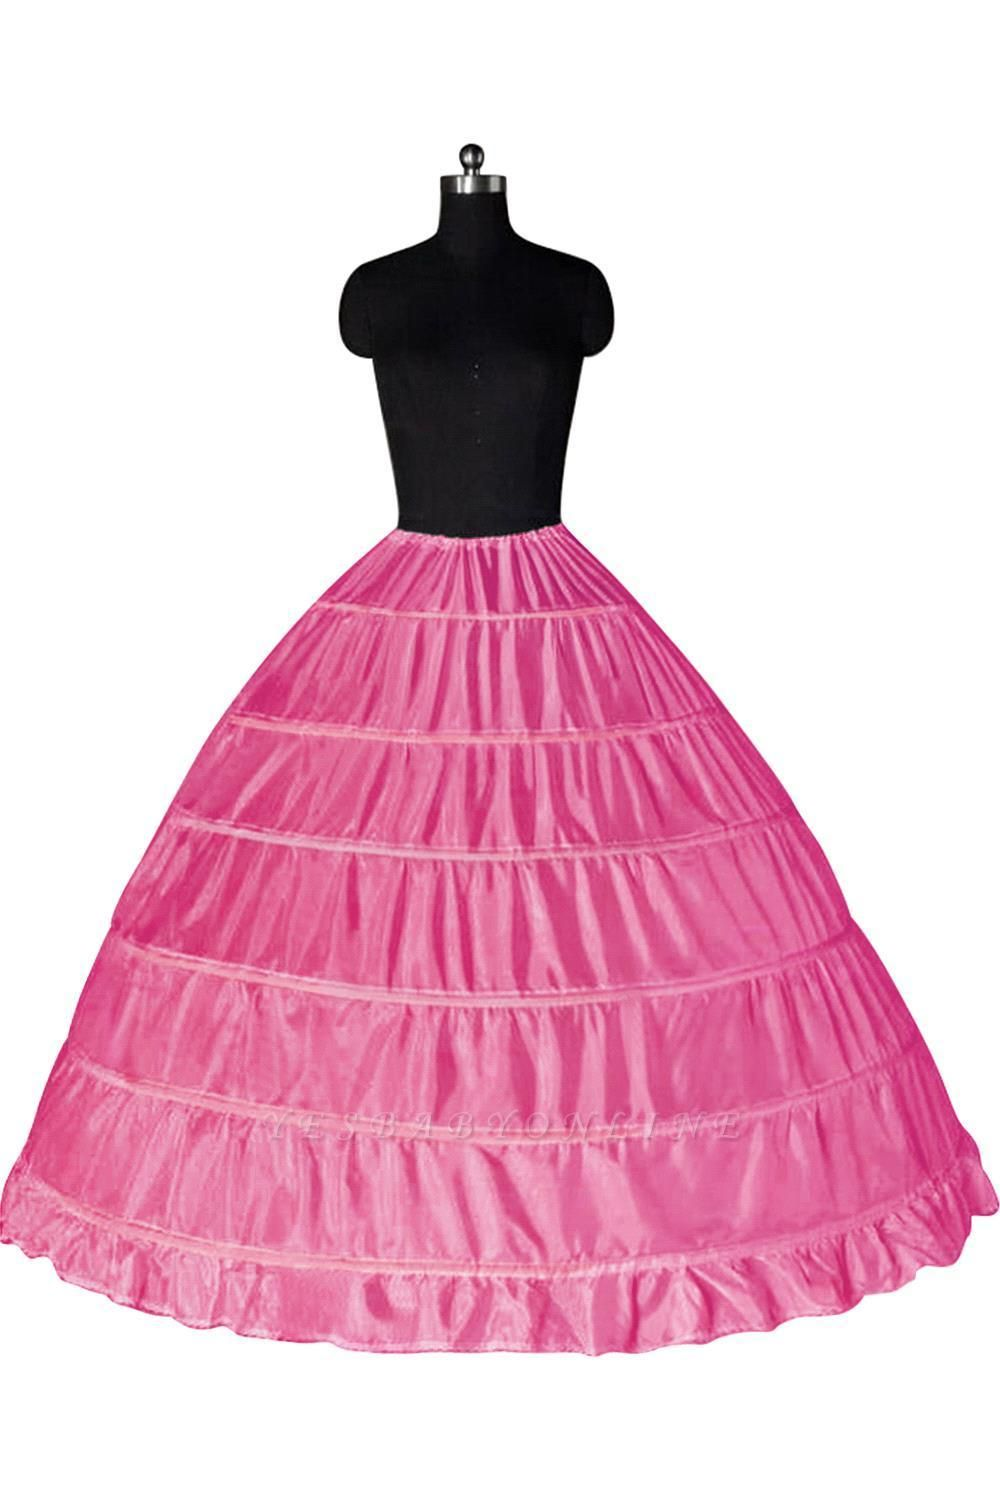 Colorful Taffeta Ball Gown Party Petticoats